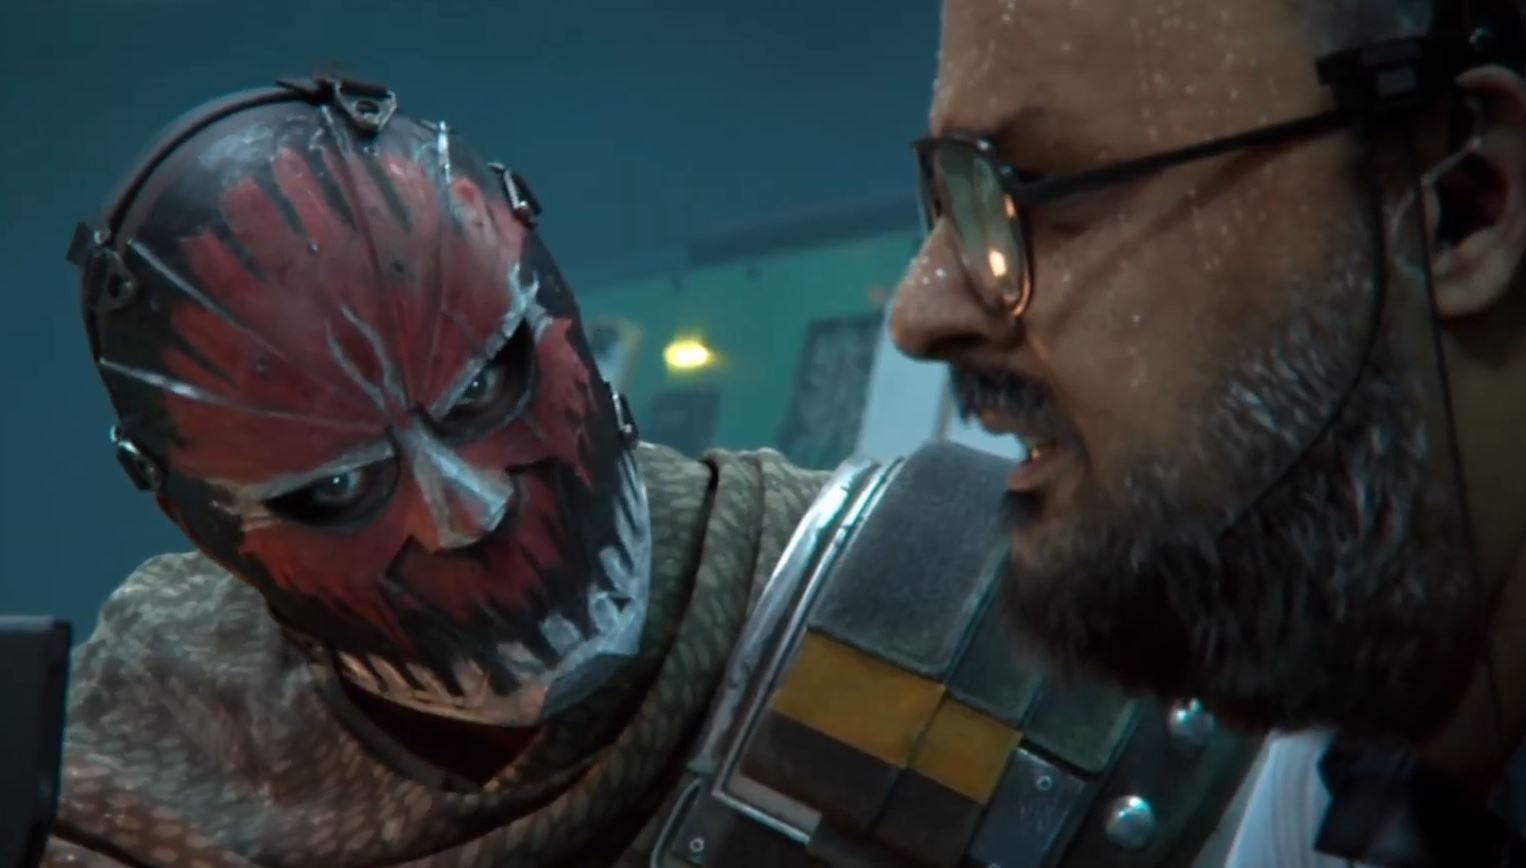 call-of-duty-black-ops-cold-war-warzone-season-4-gets-first-trailer-at-summer-games-fest-2